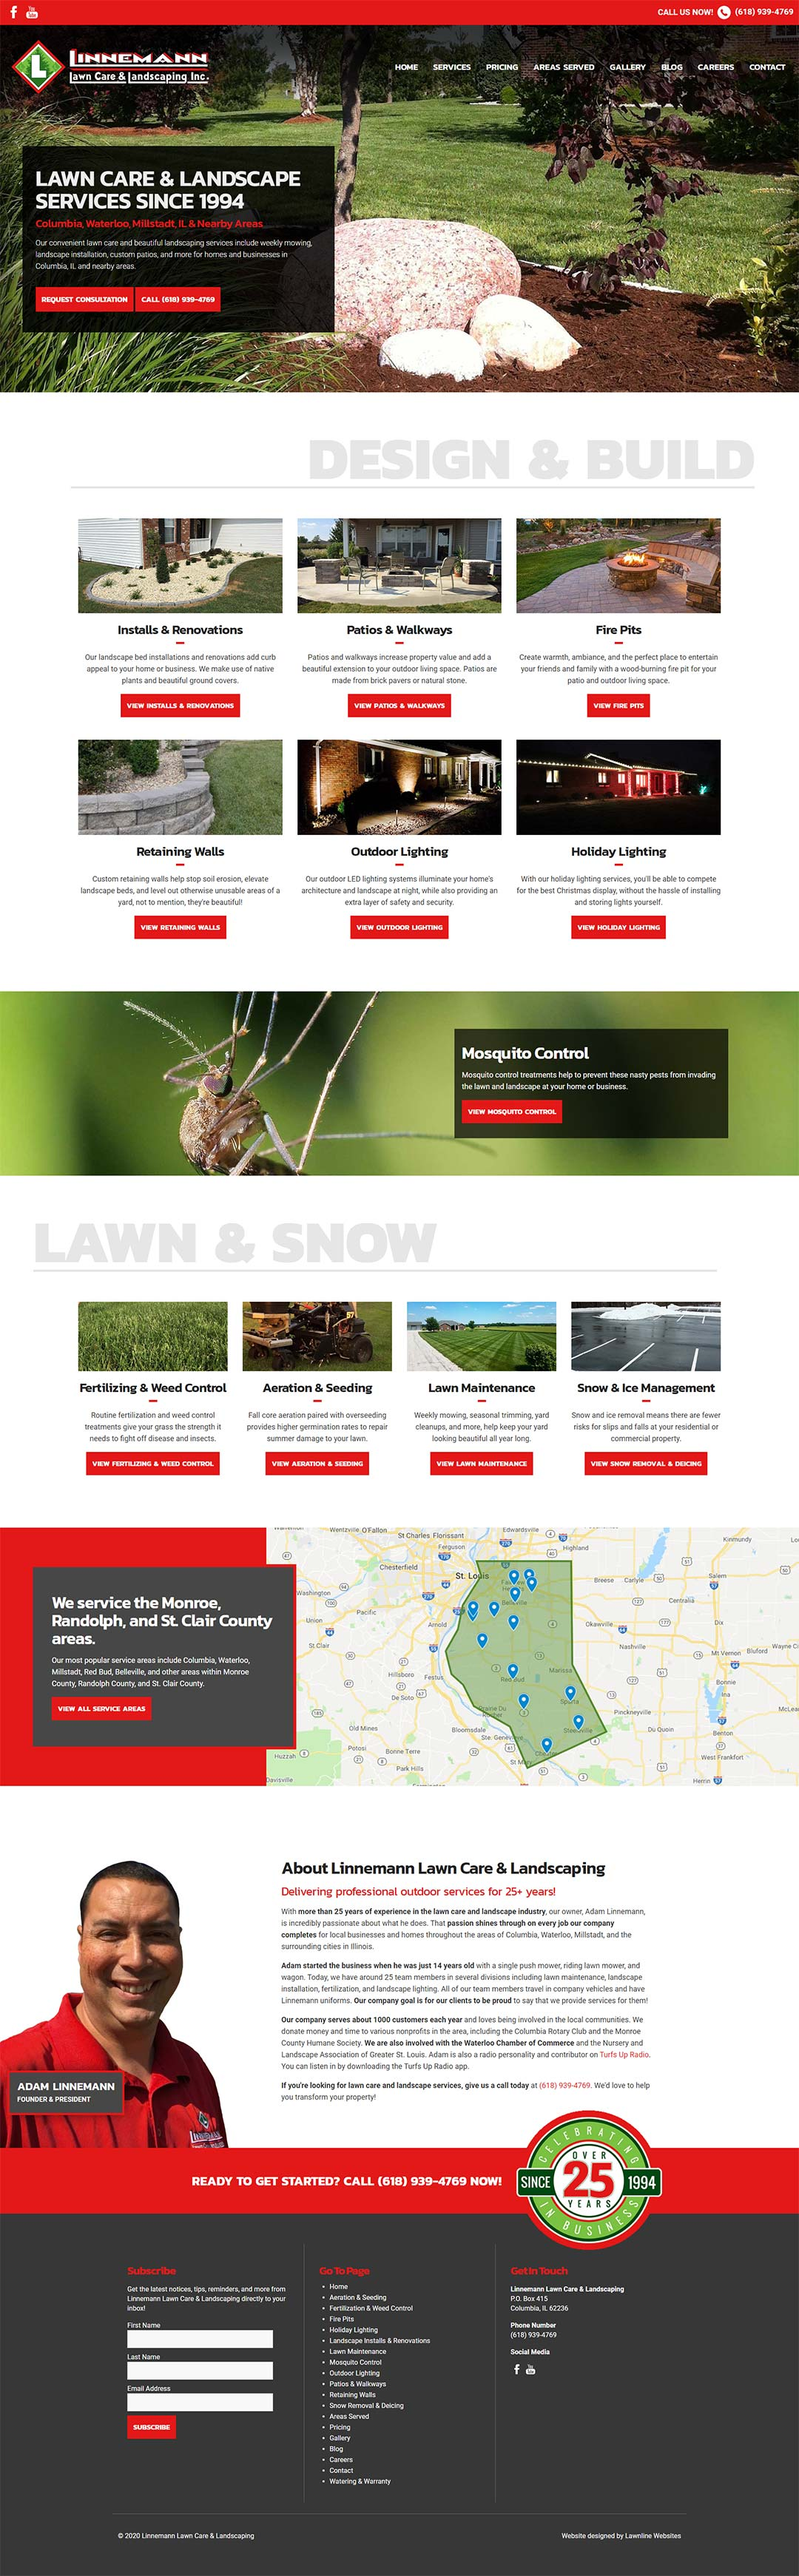 Linnemann Lawn Care & Landscaping Inc. Homepage Screenshot